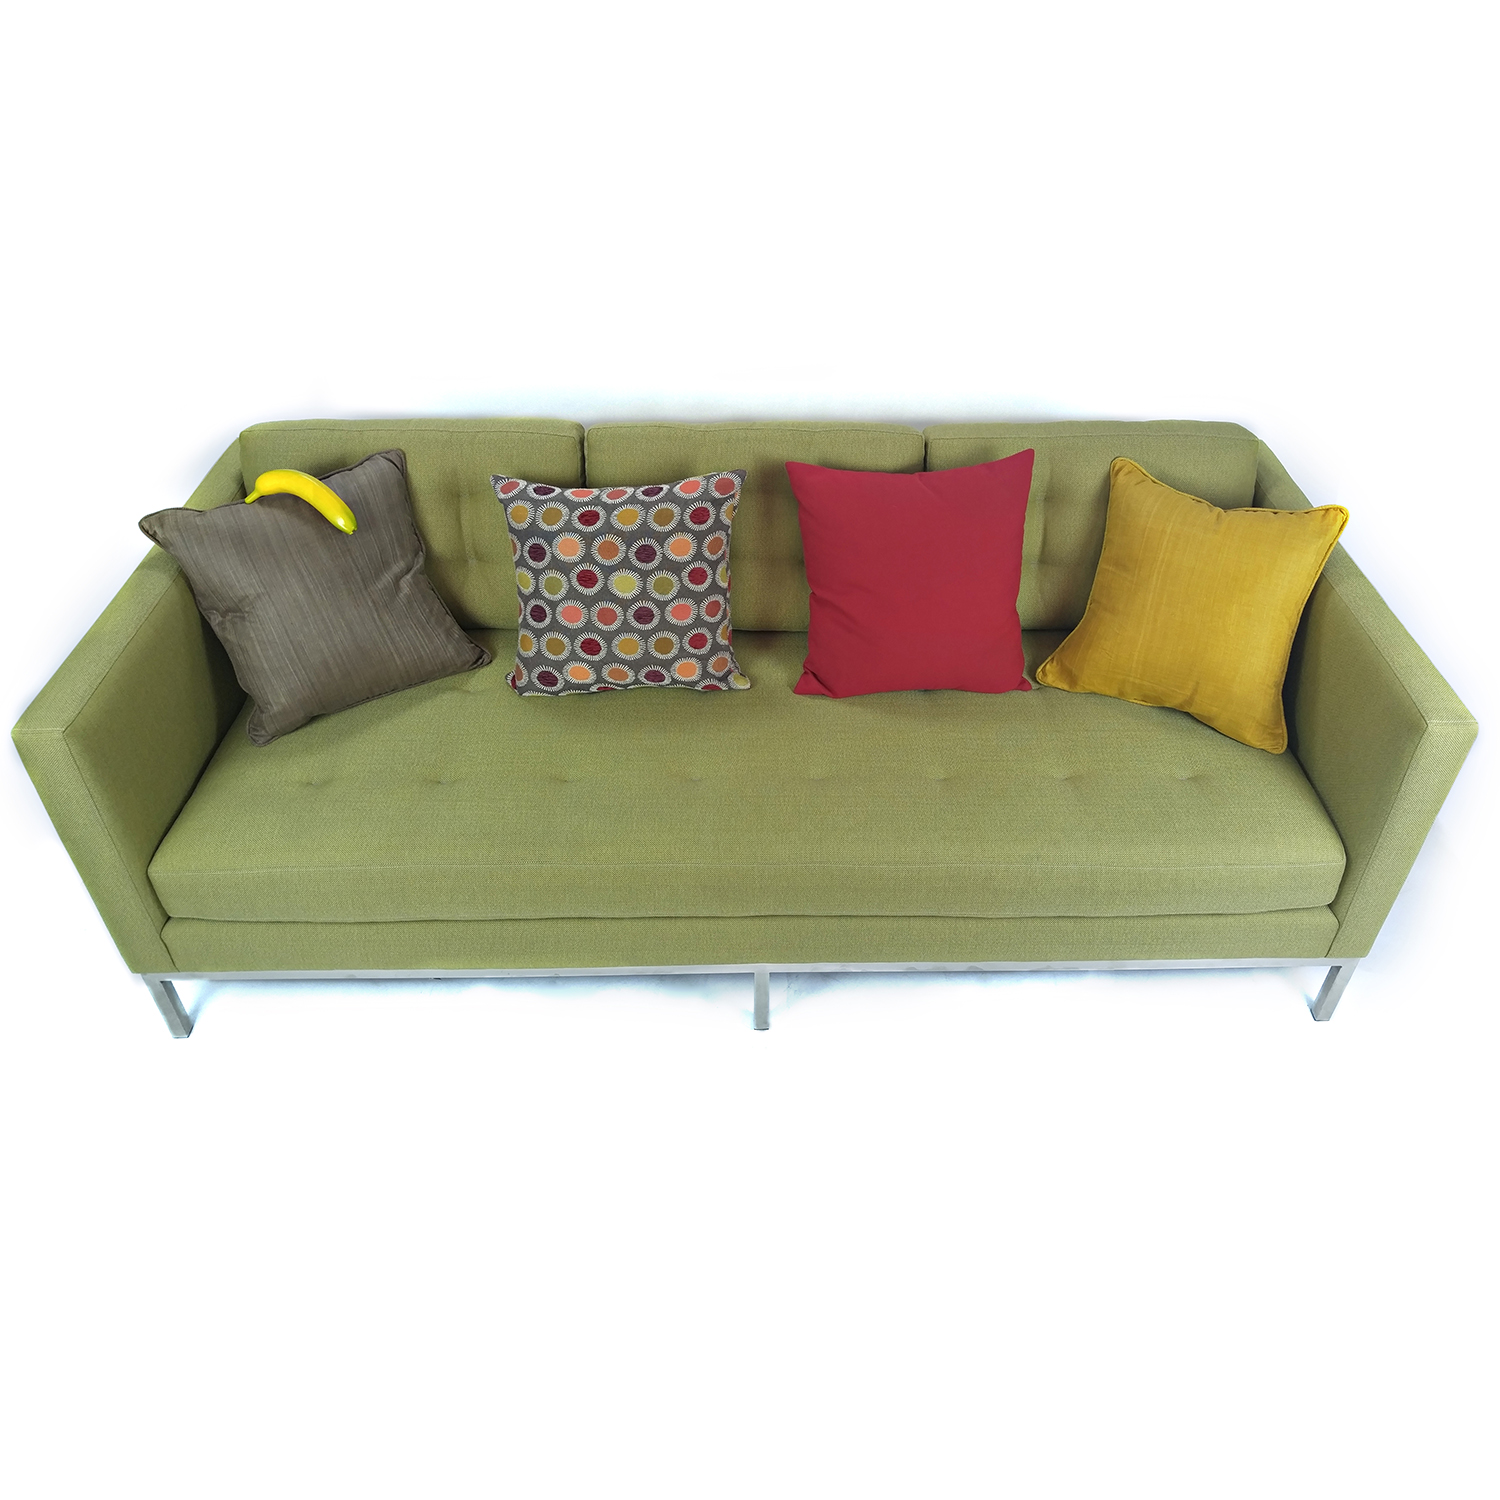 Room and Board Room and Board Sabine Sofa on sale